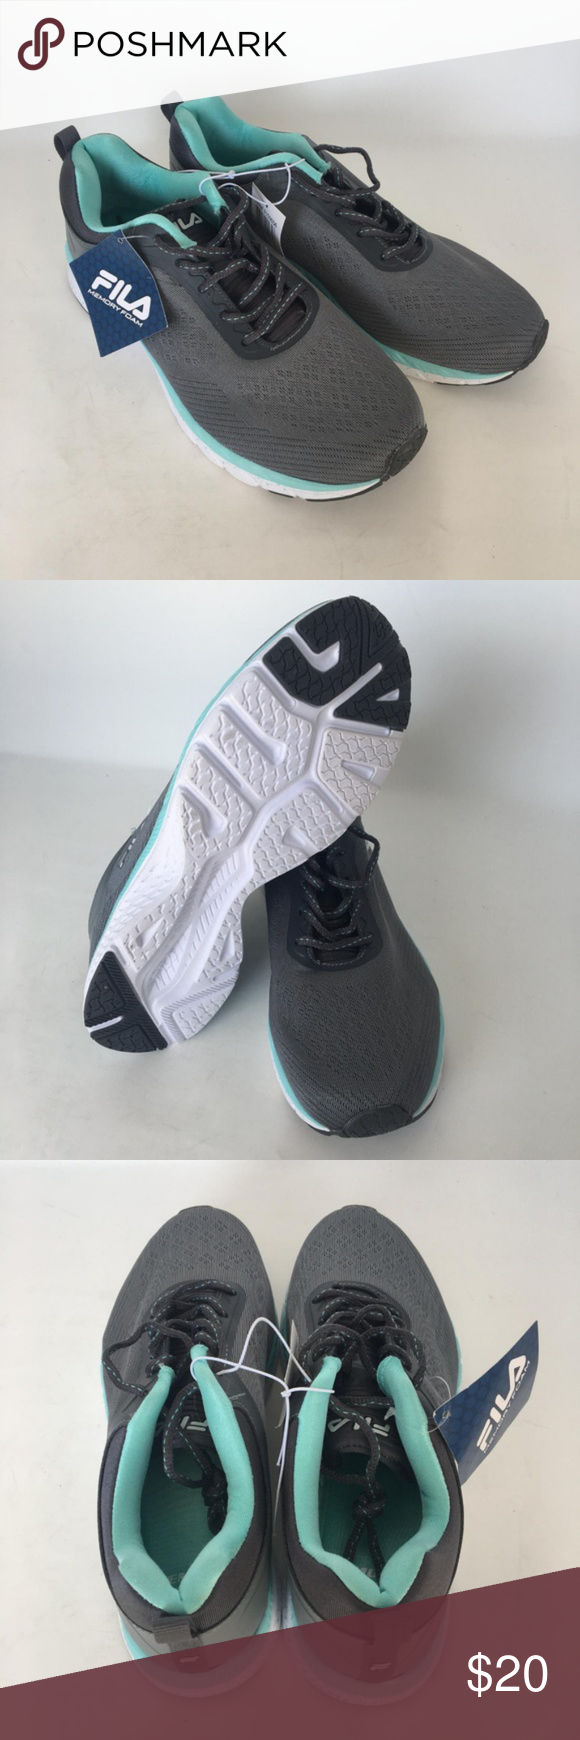 63c83f569fa1 FILA Womens Memory Foam Outreach Athletic Shoe Used But in Excellent  Condition Actually these are customer